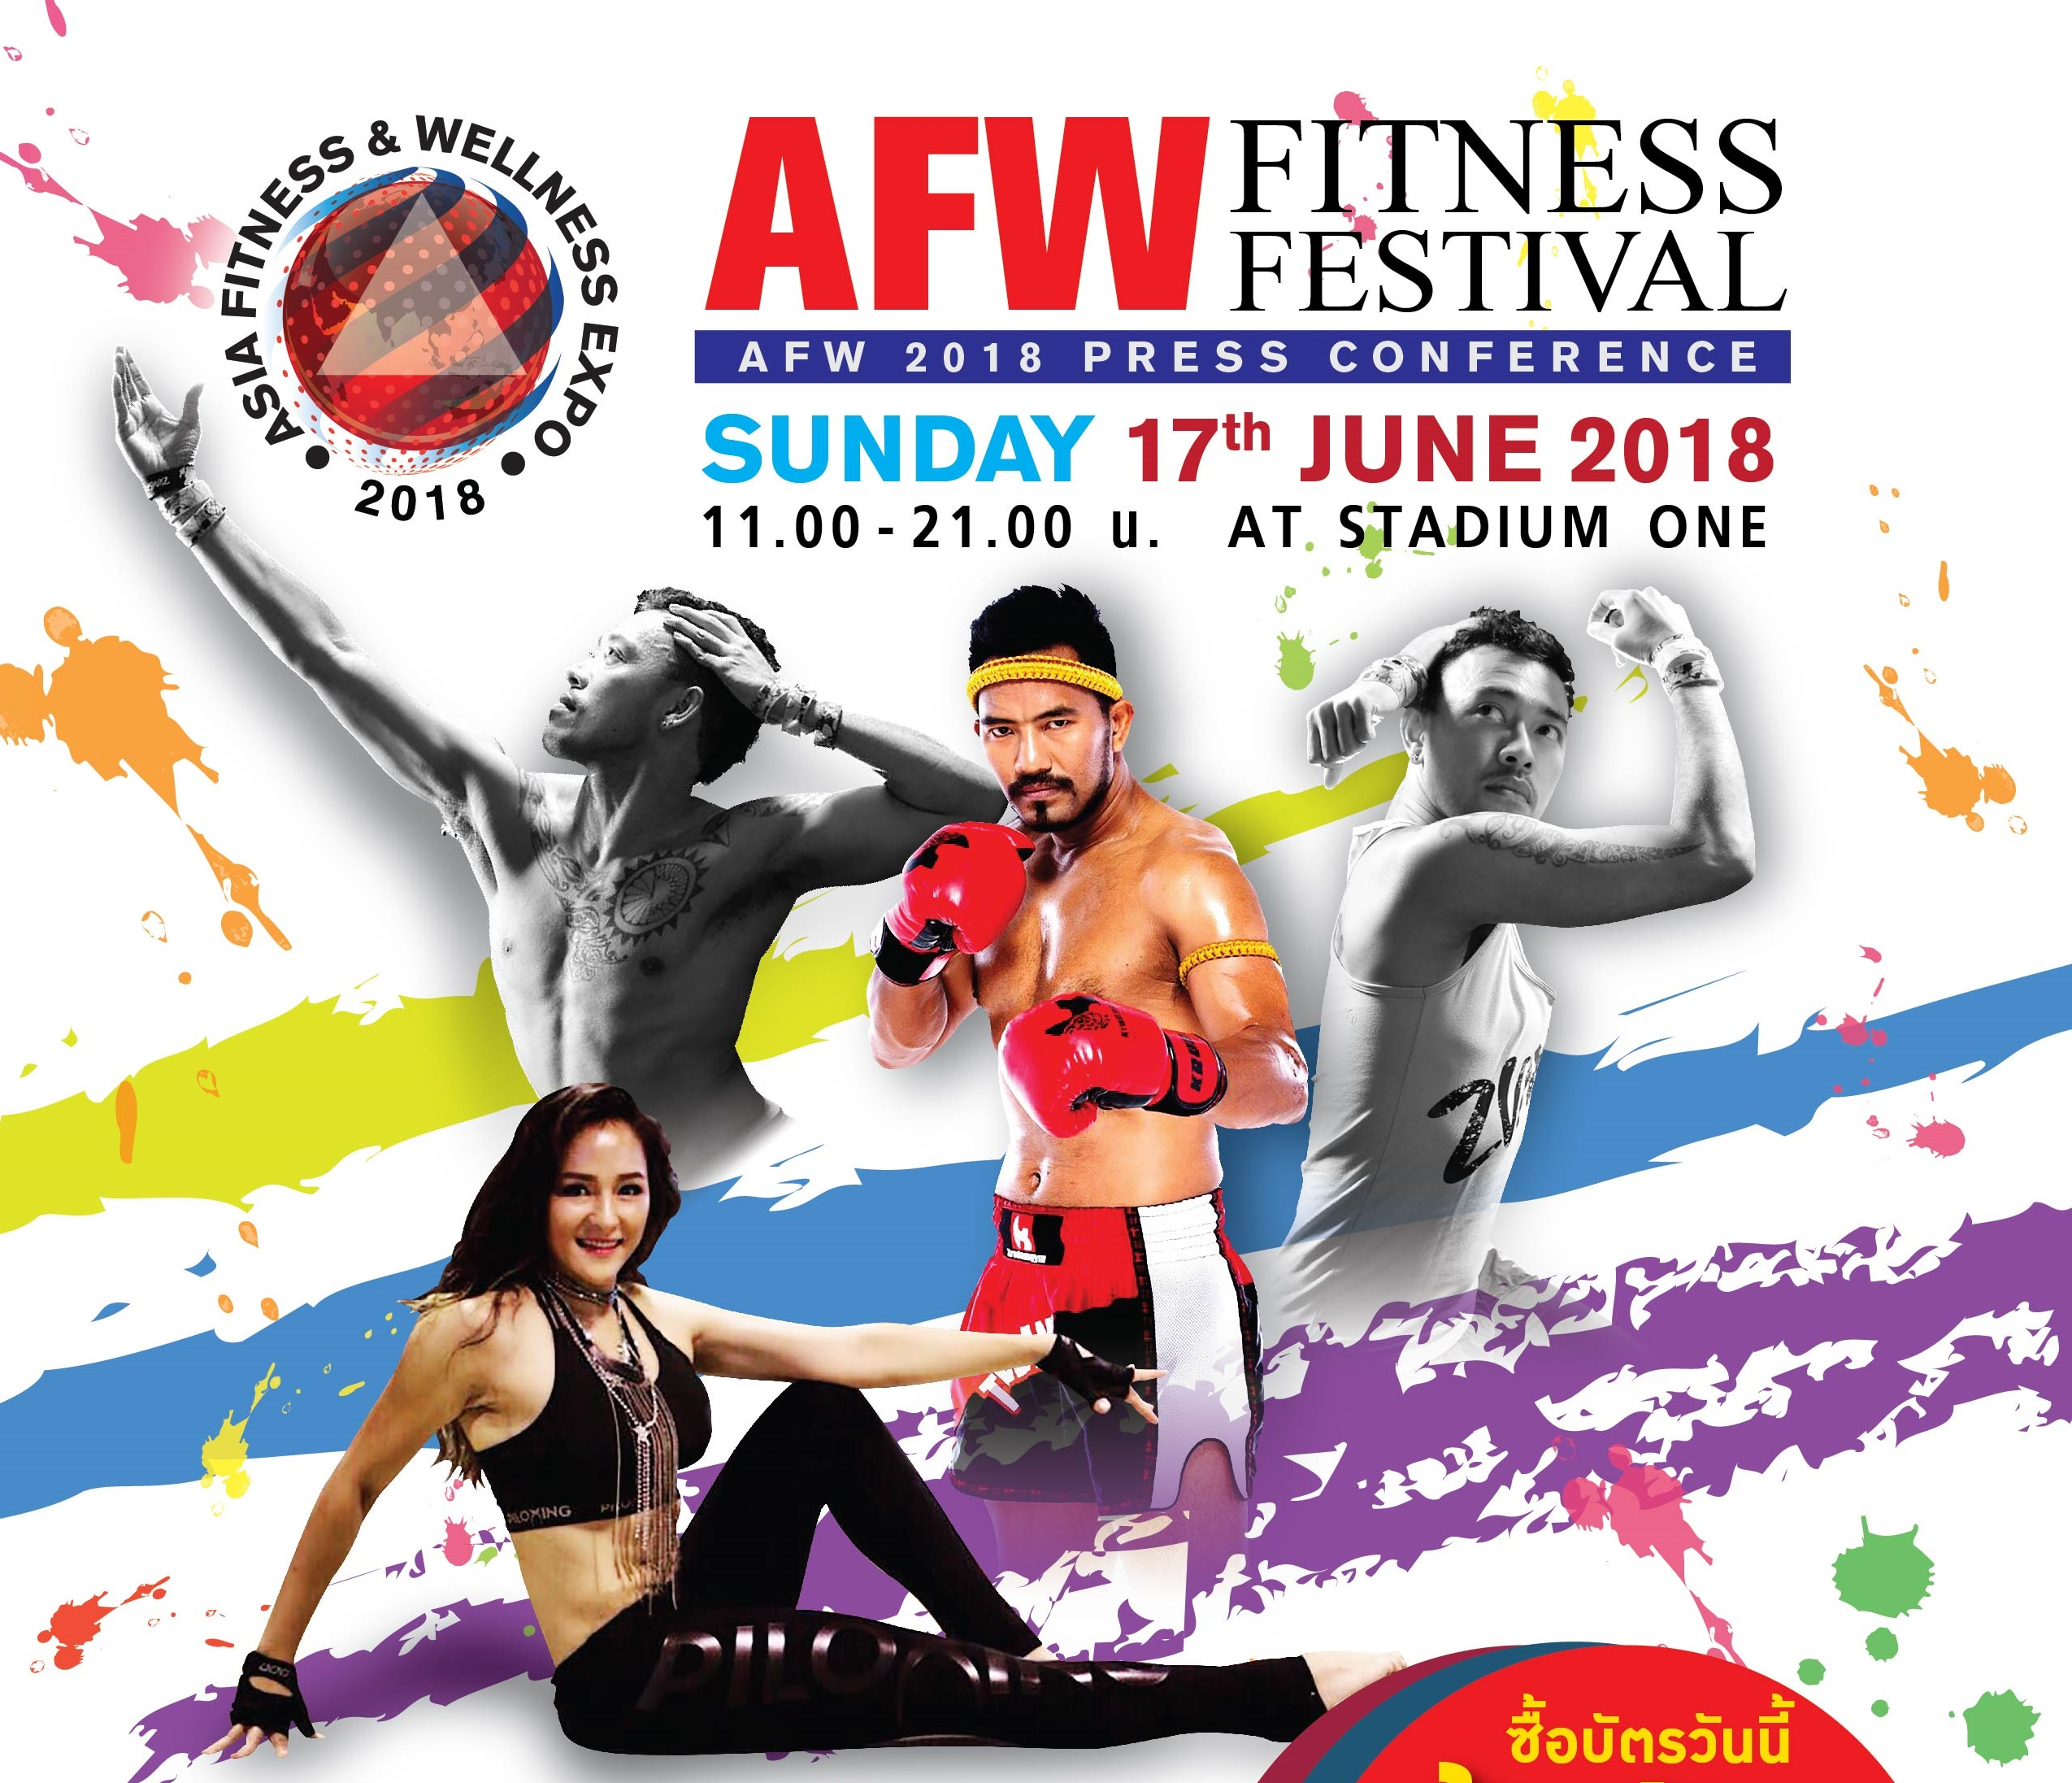 ASIA FITNESS & WELLNESS EXPO 2018 (AFW)